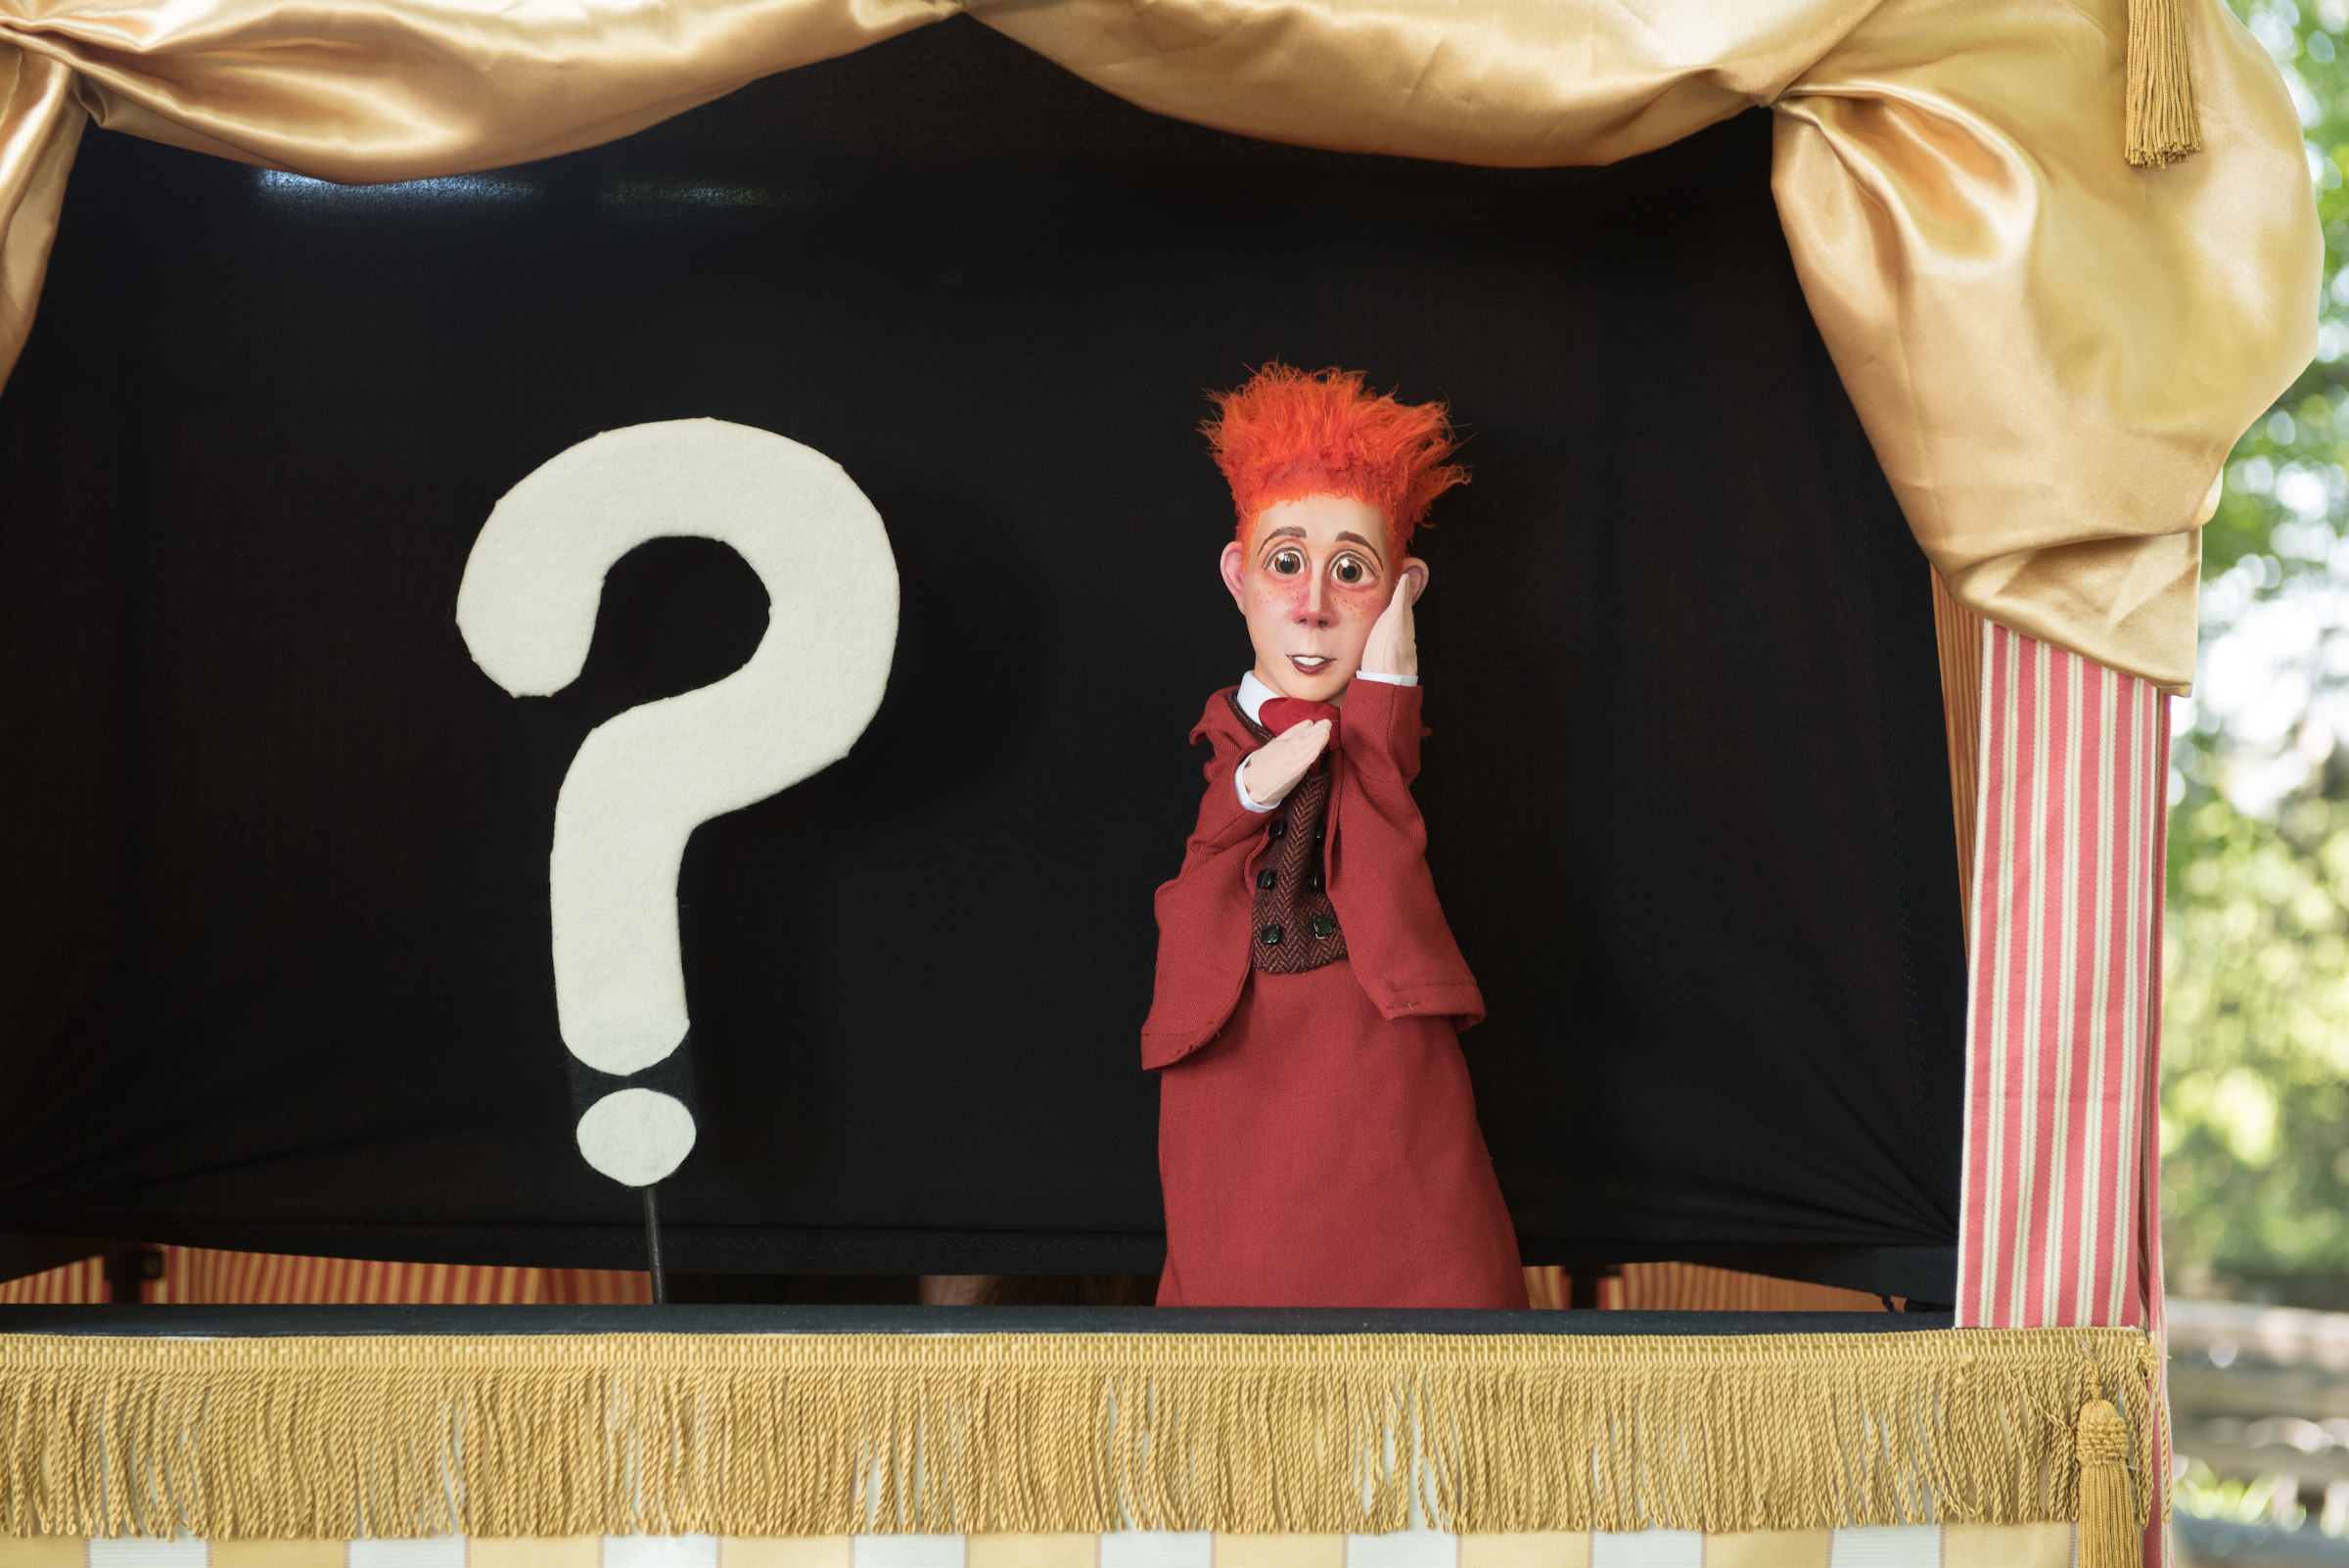 a red-haired puppet in front of a white question mark